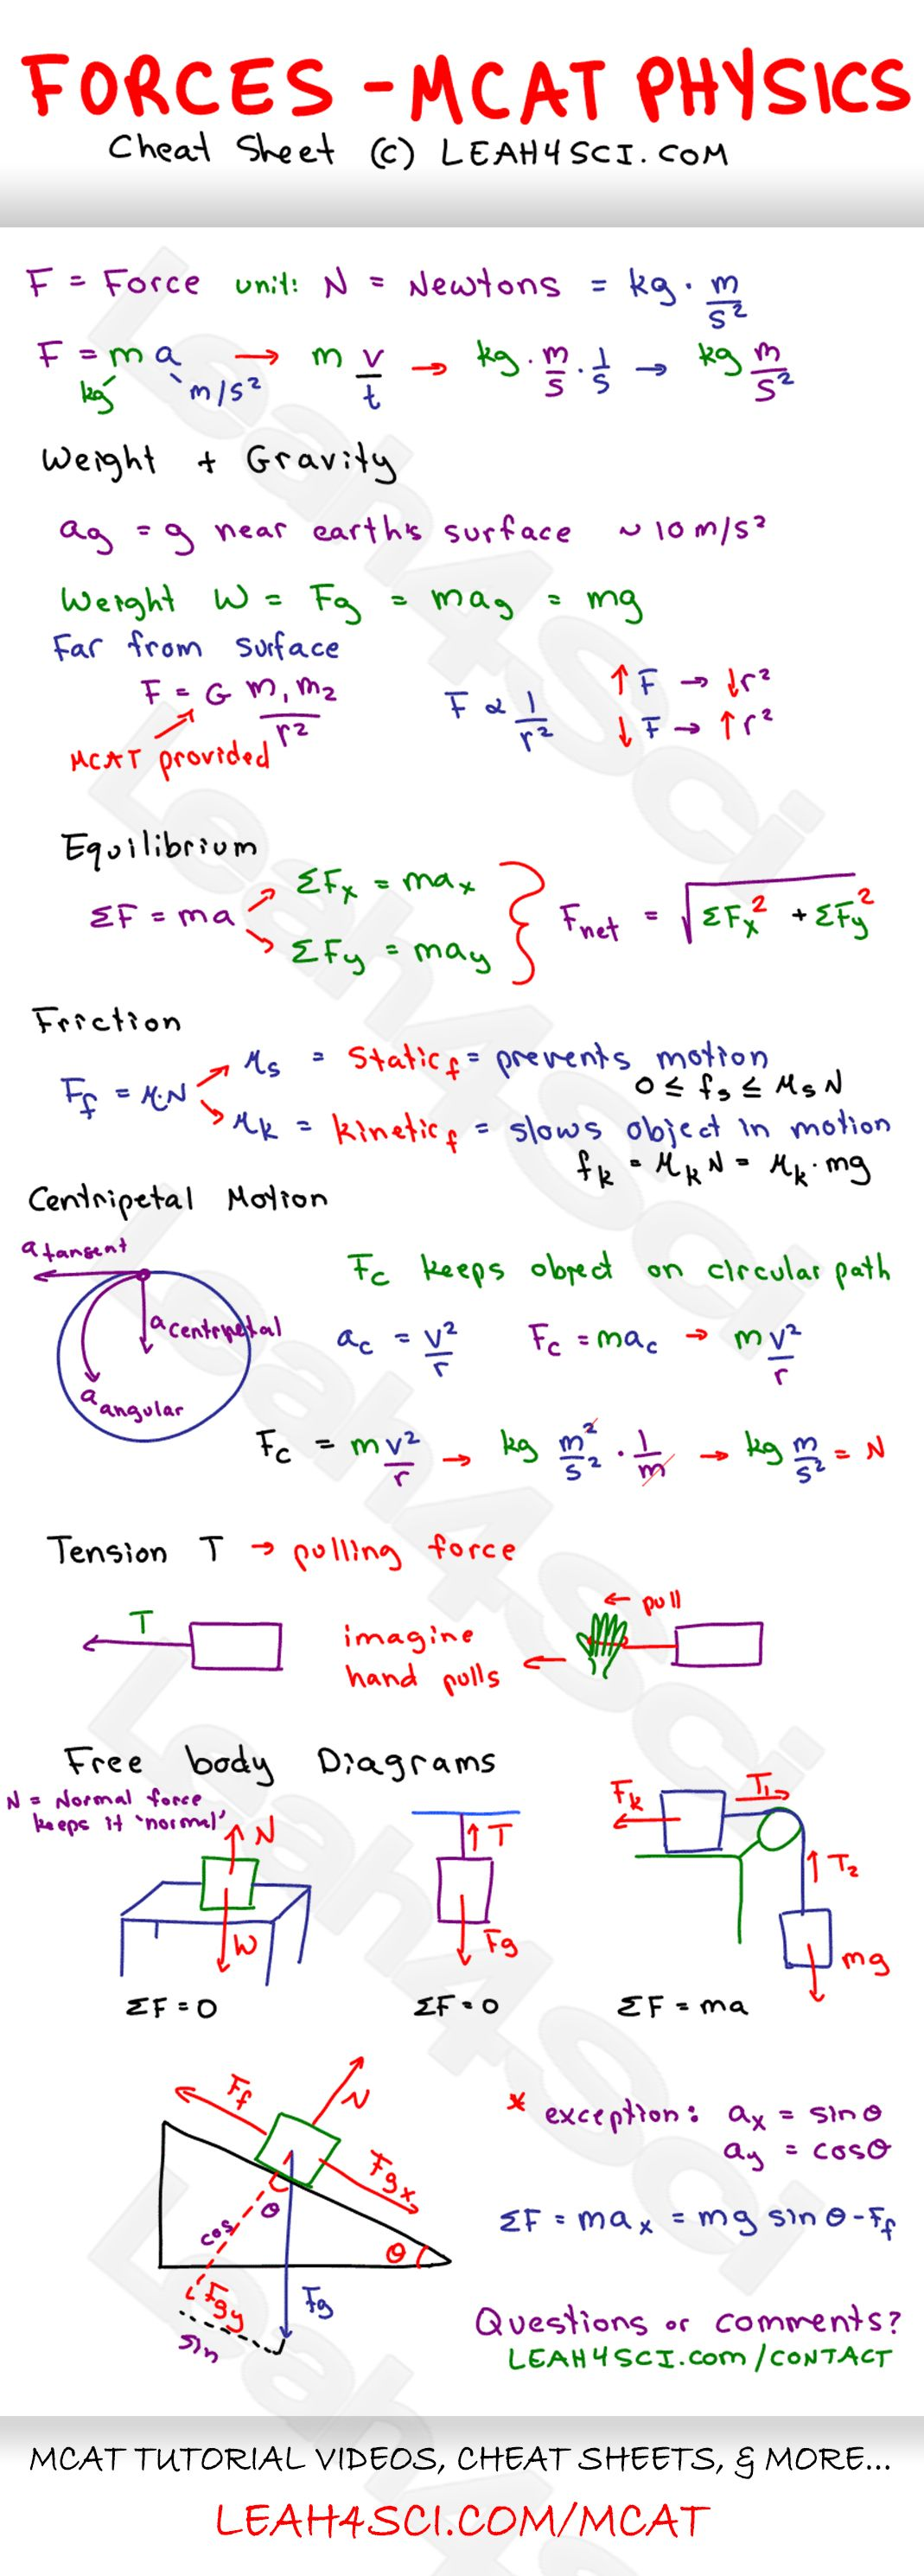 Mcat forces study guide cheat sheet by leah4scig 10692979 mcat physics forces study guide cheat sheet by pooptronica